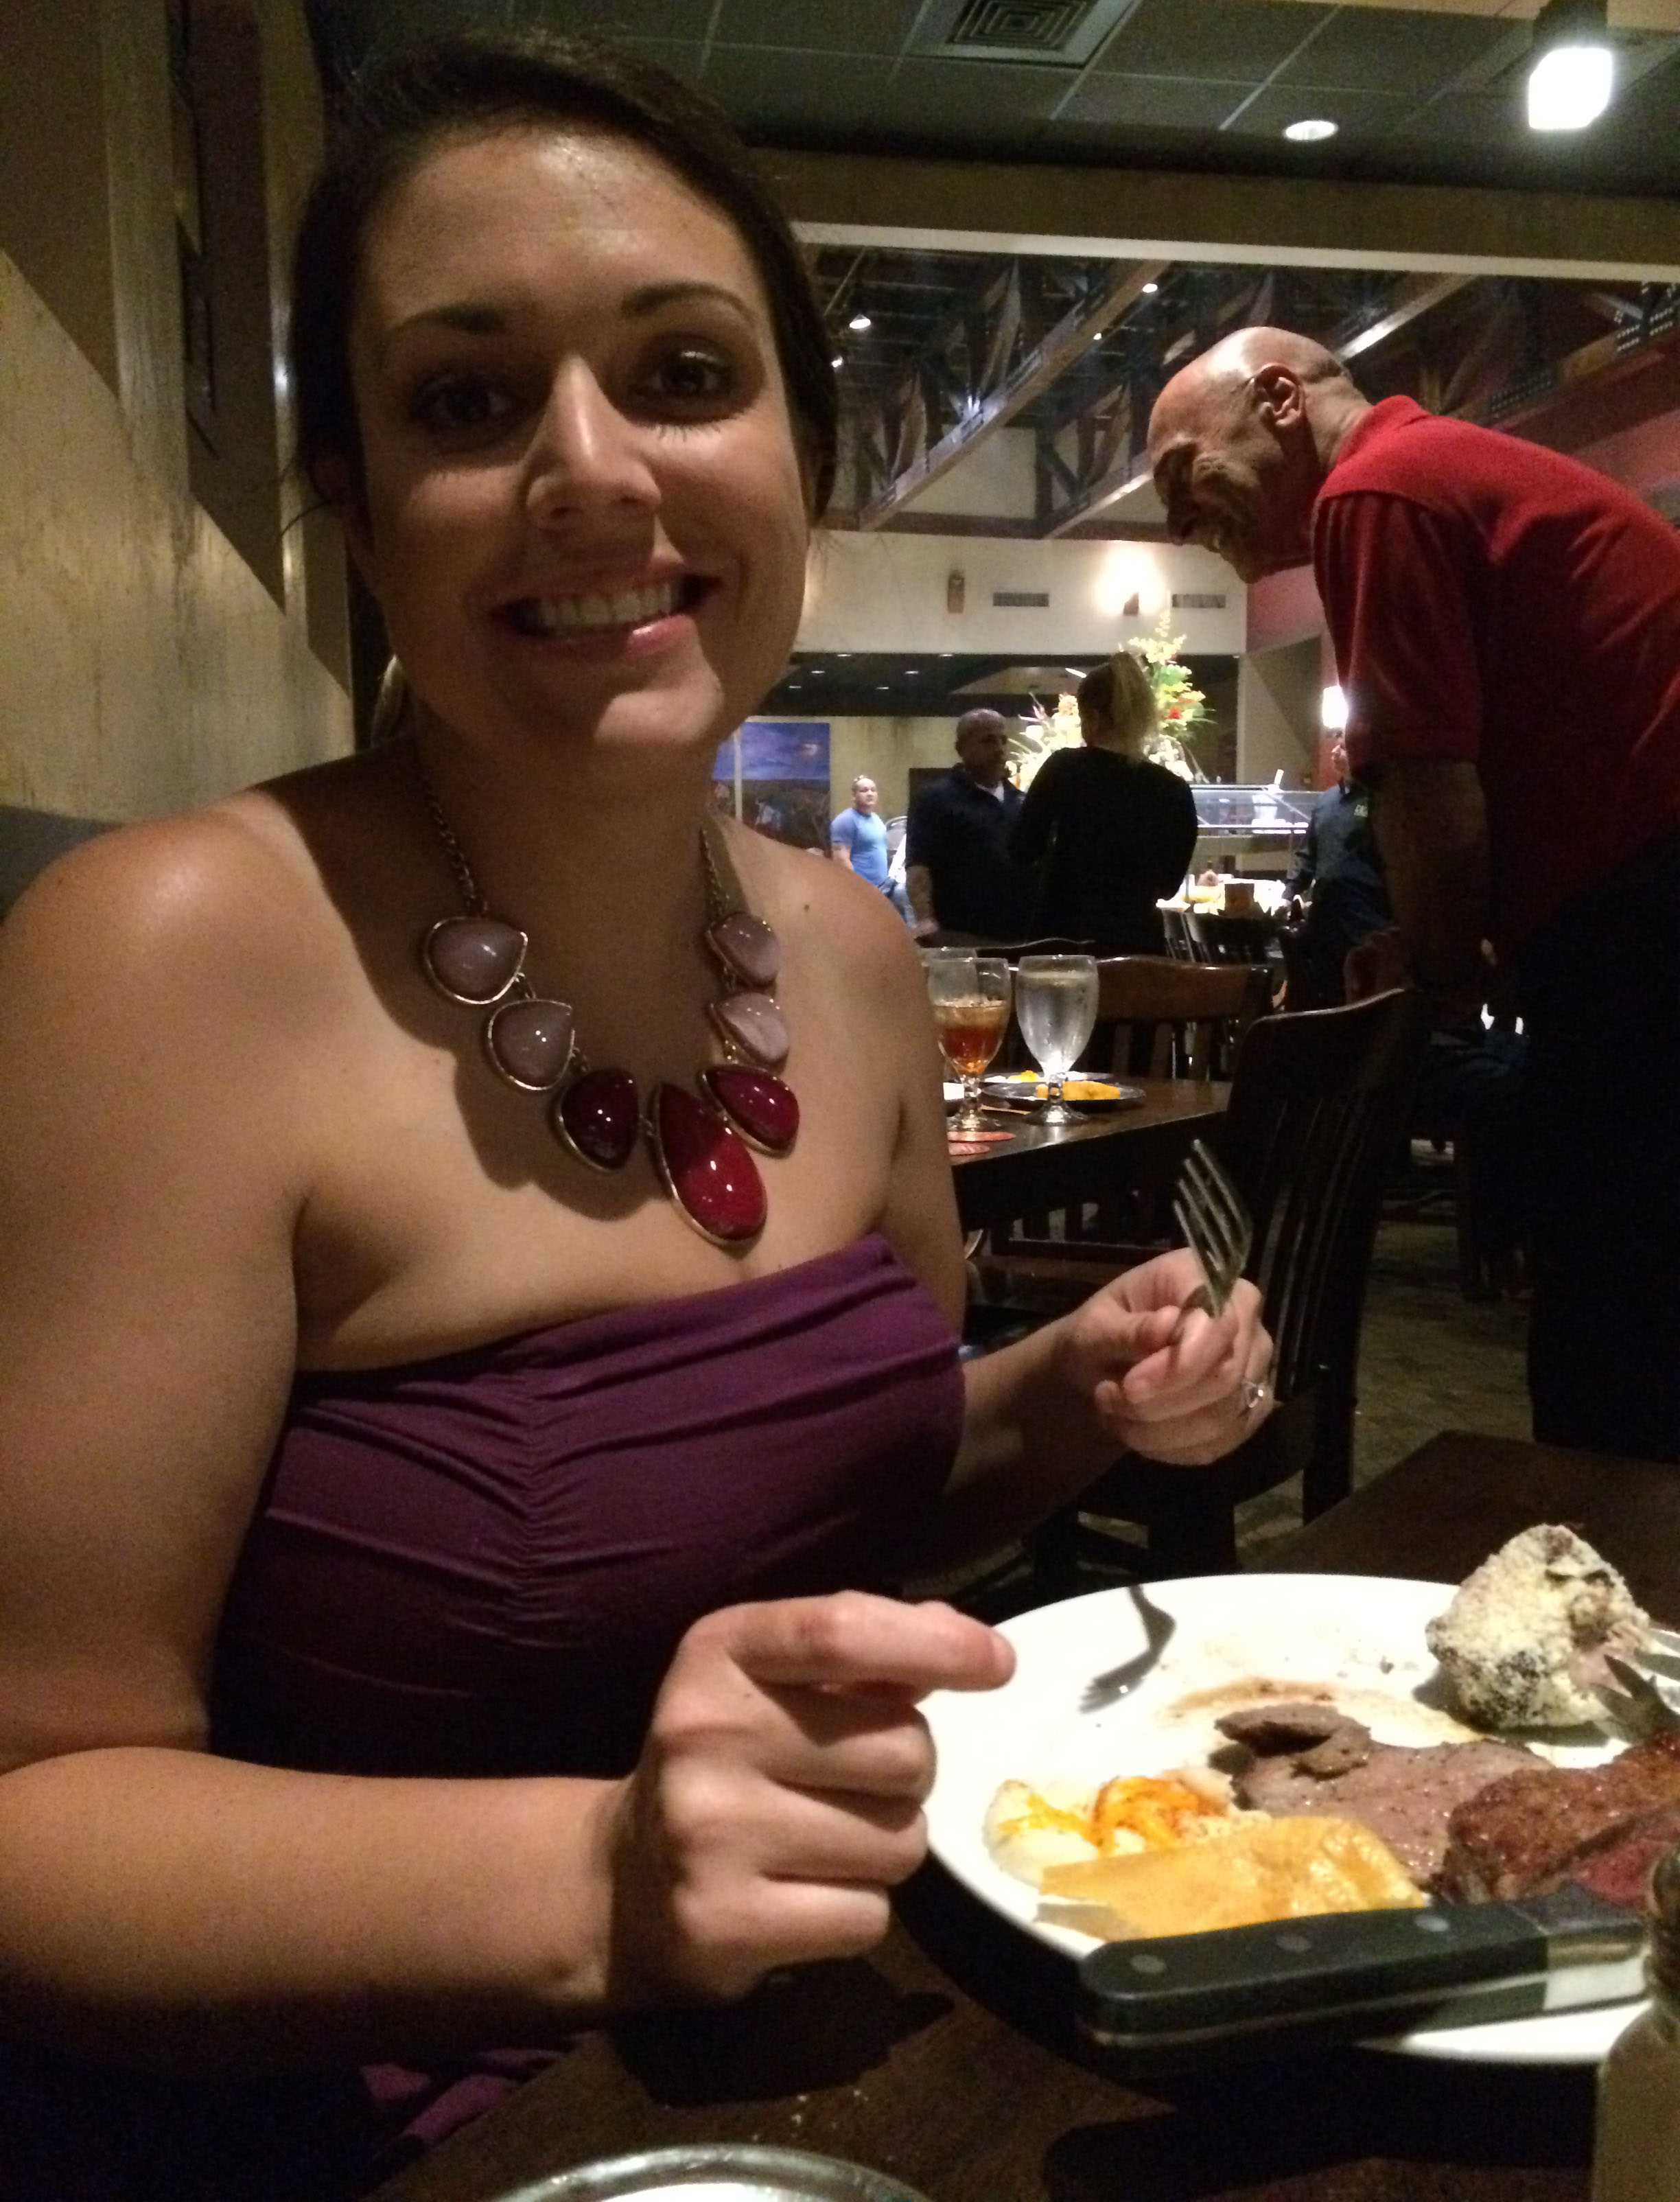 My beautiful fiancé enjoying her dinner at Rioz.